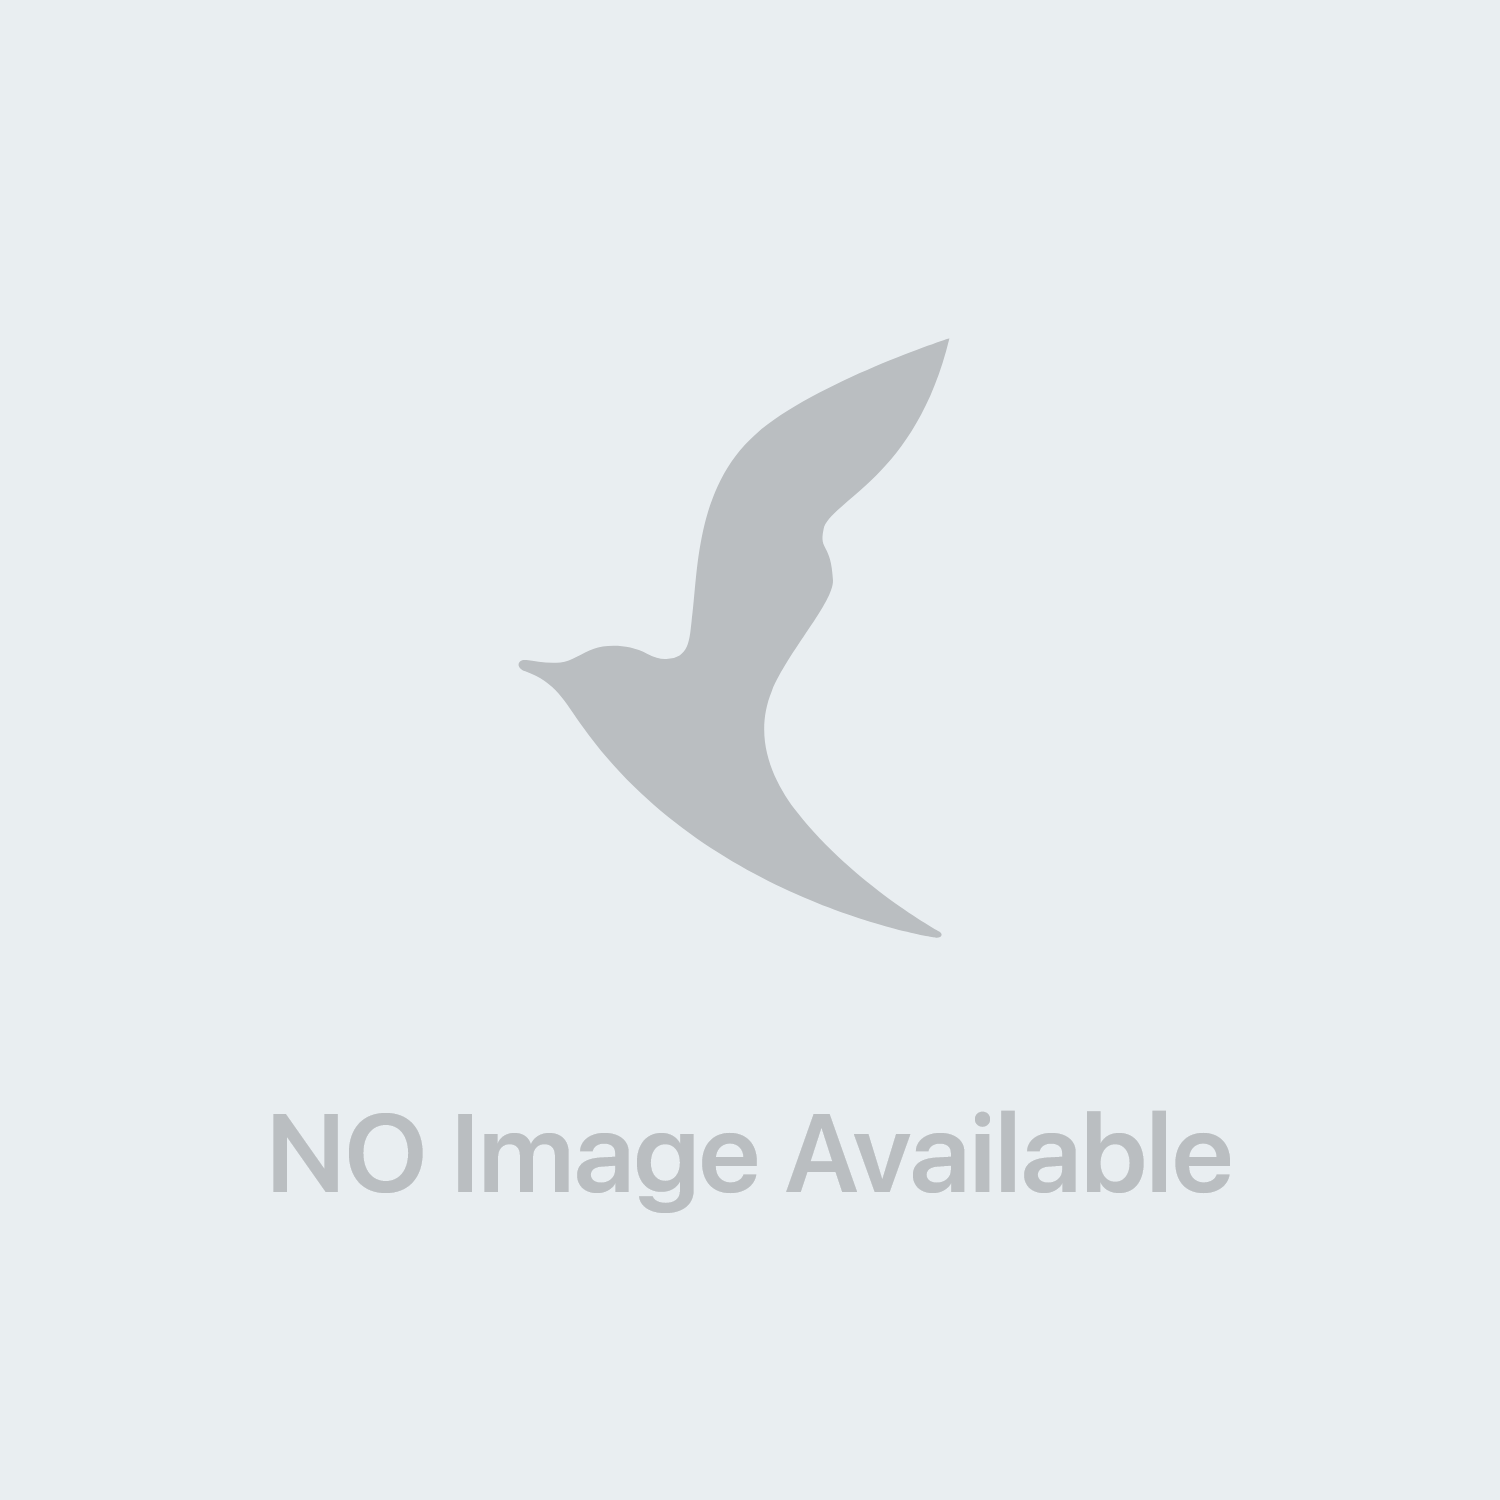 Bioscalin Nutri Color 6.3 Biondo Scuro Dorato Trattamento Colorante